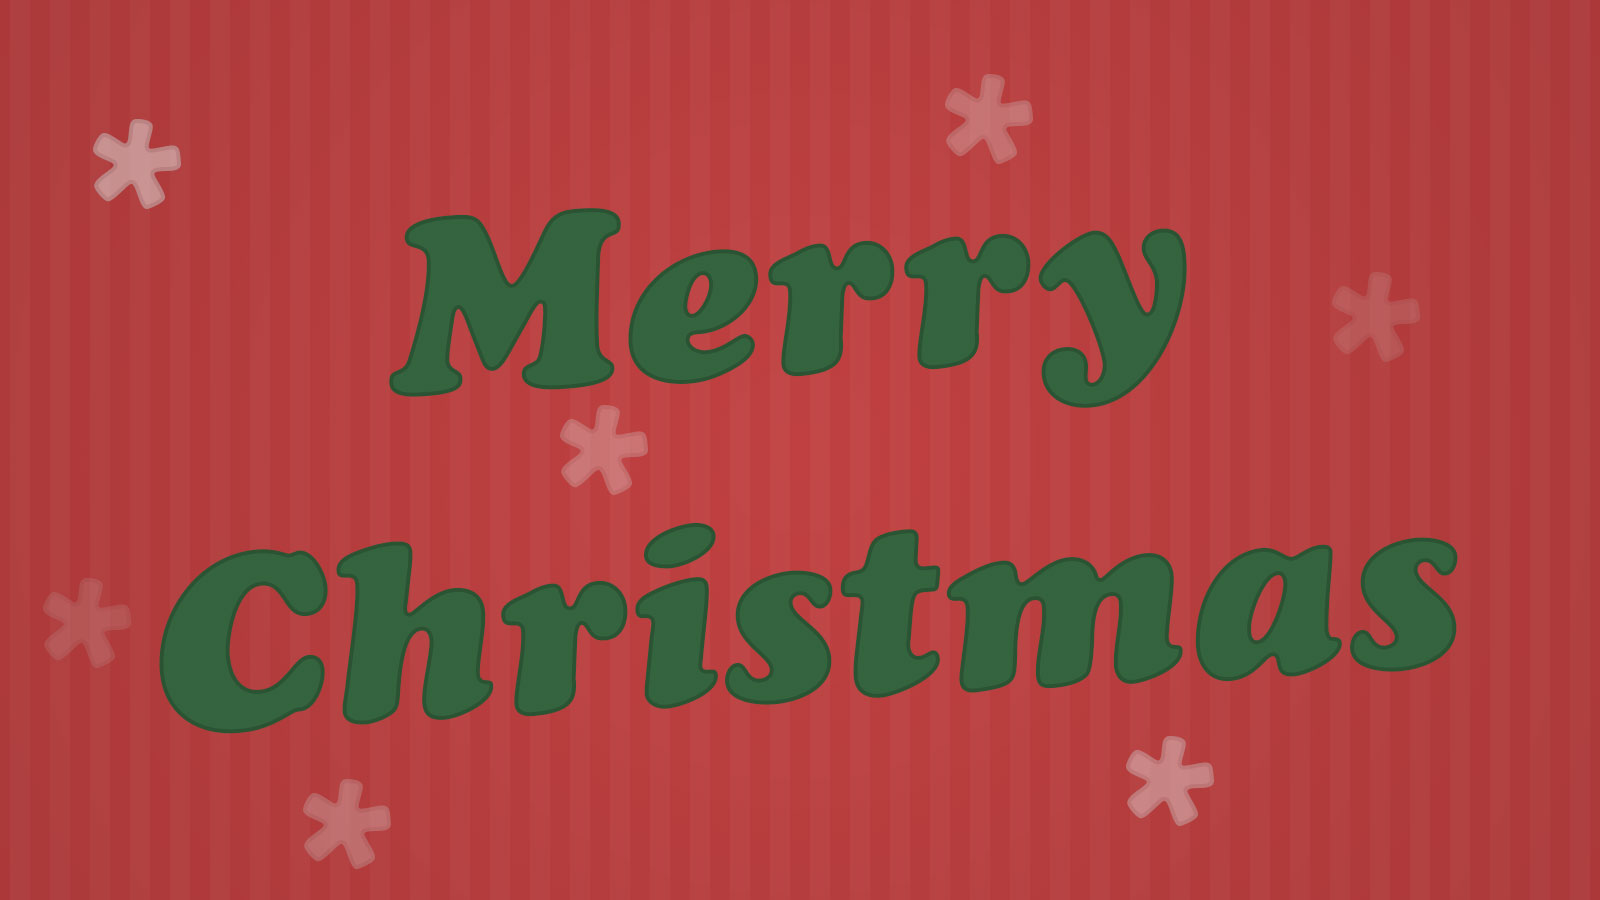 Merry Christmas text over a red striped background with snow flakes.